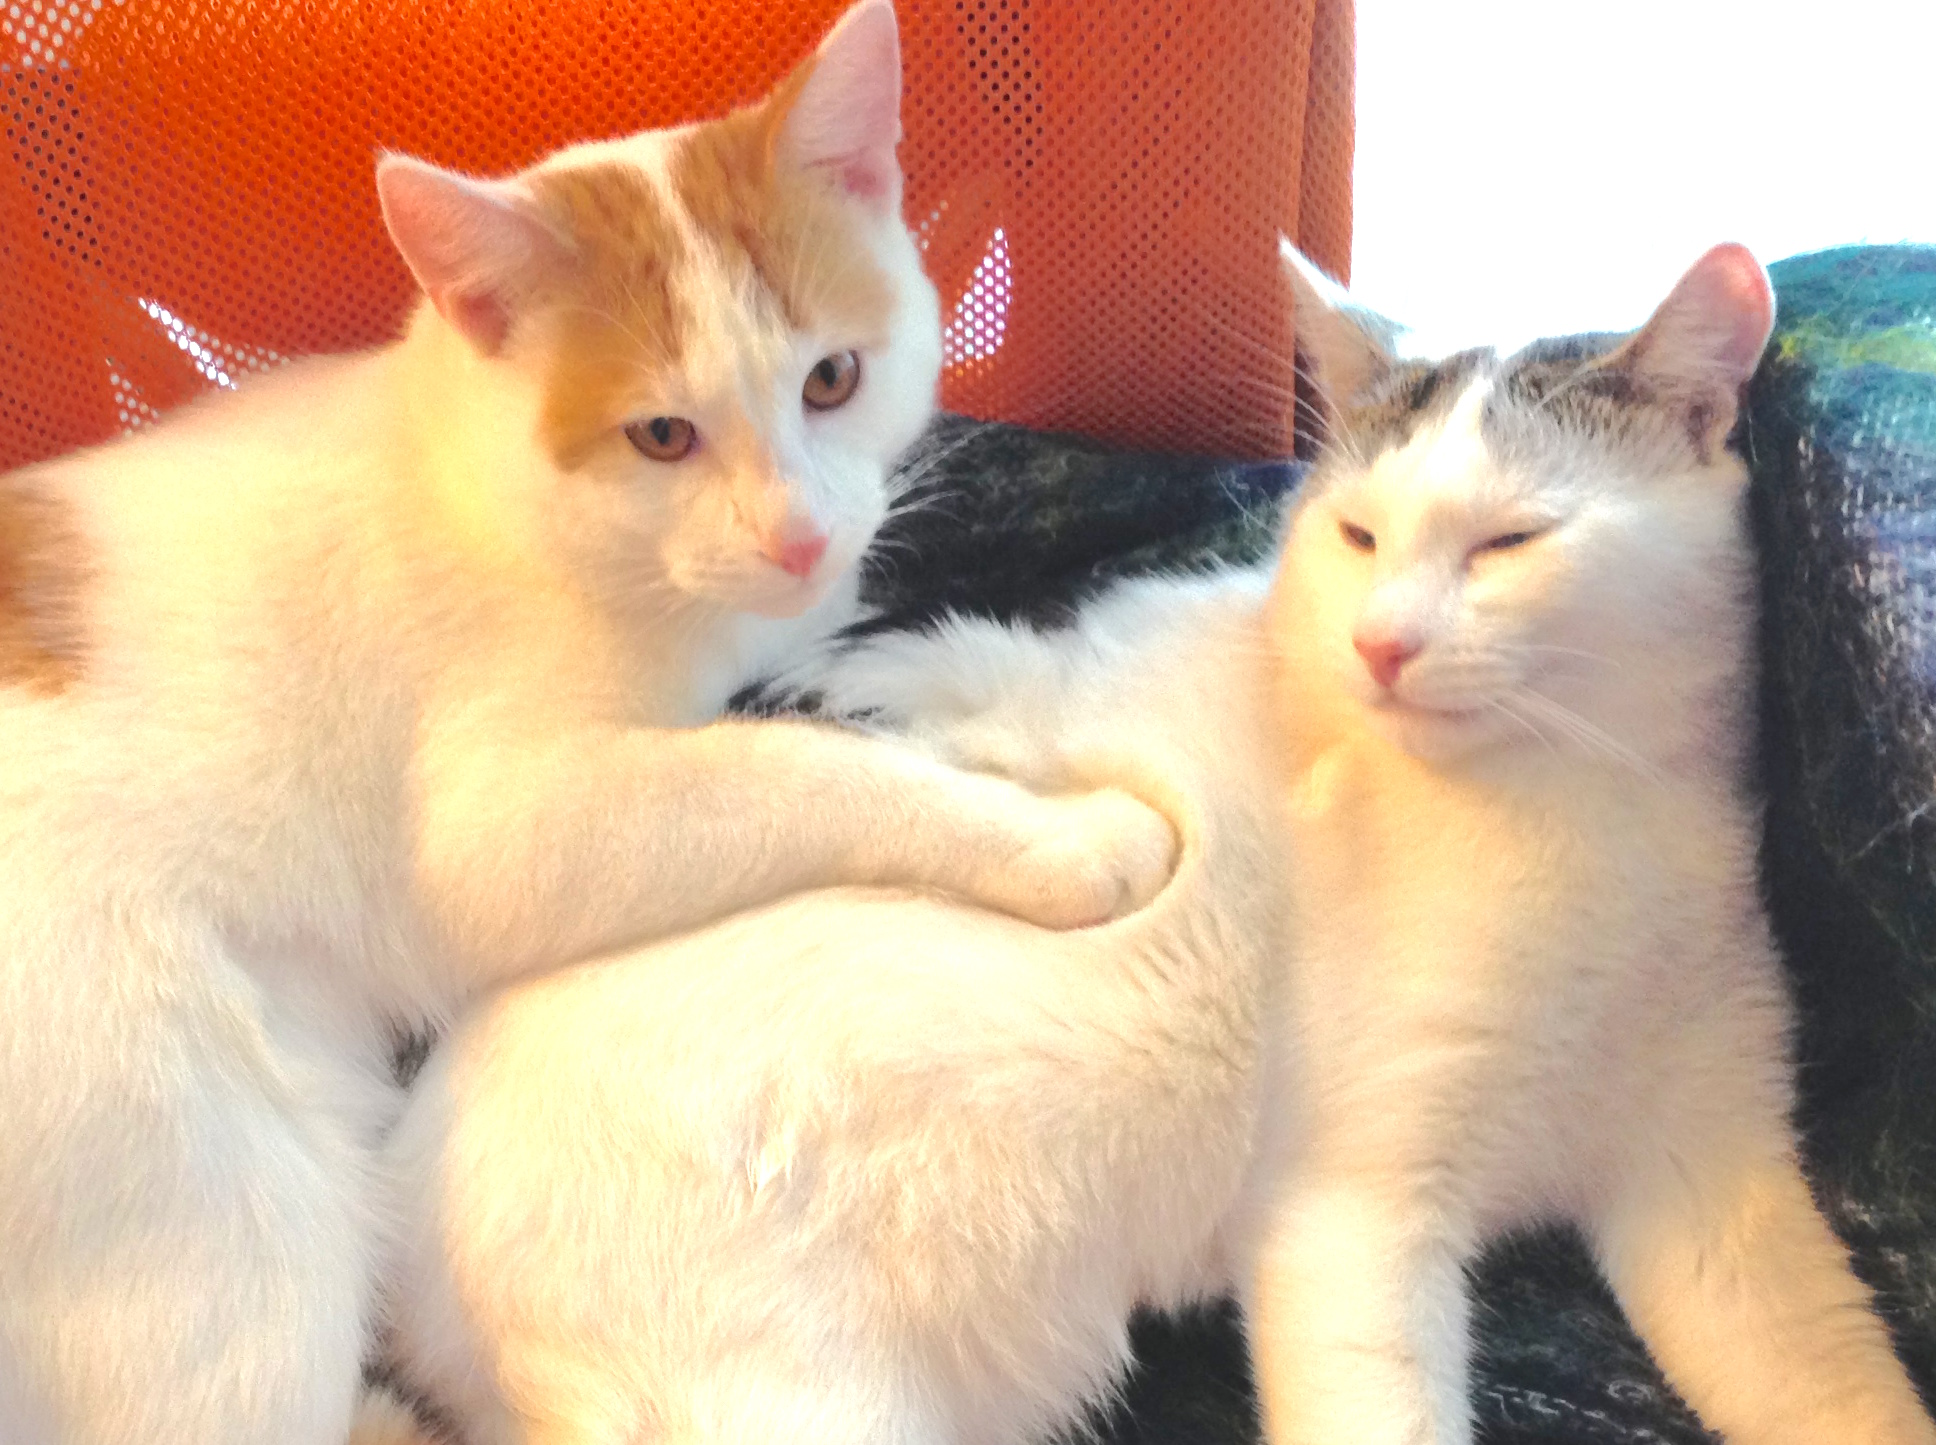 Latvia brothers cats found